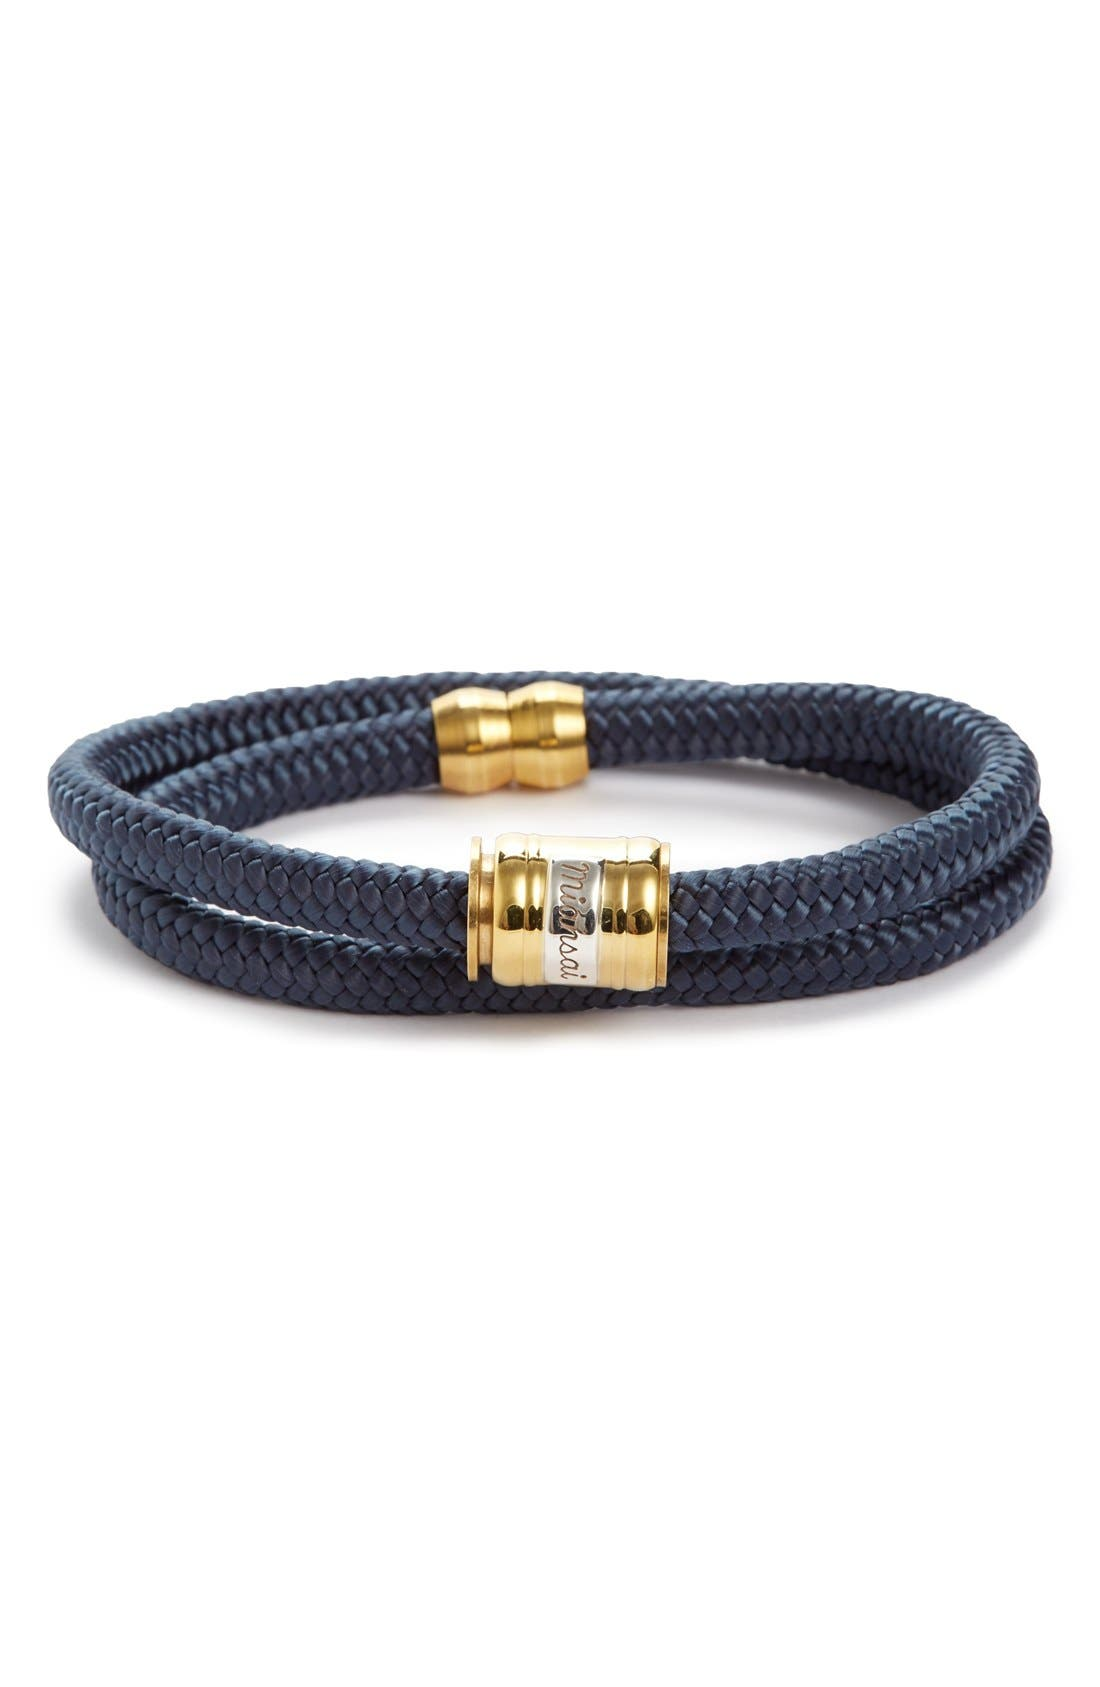 MIANSAI Casing Brass Rope Bracelet in Solid Navy